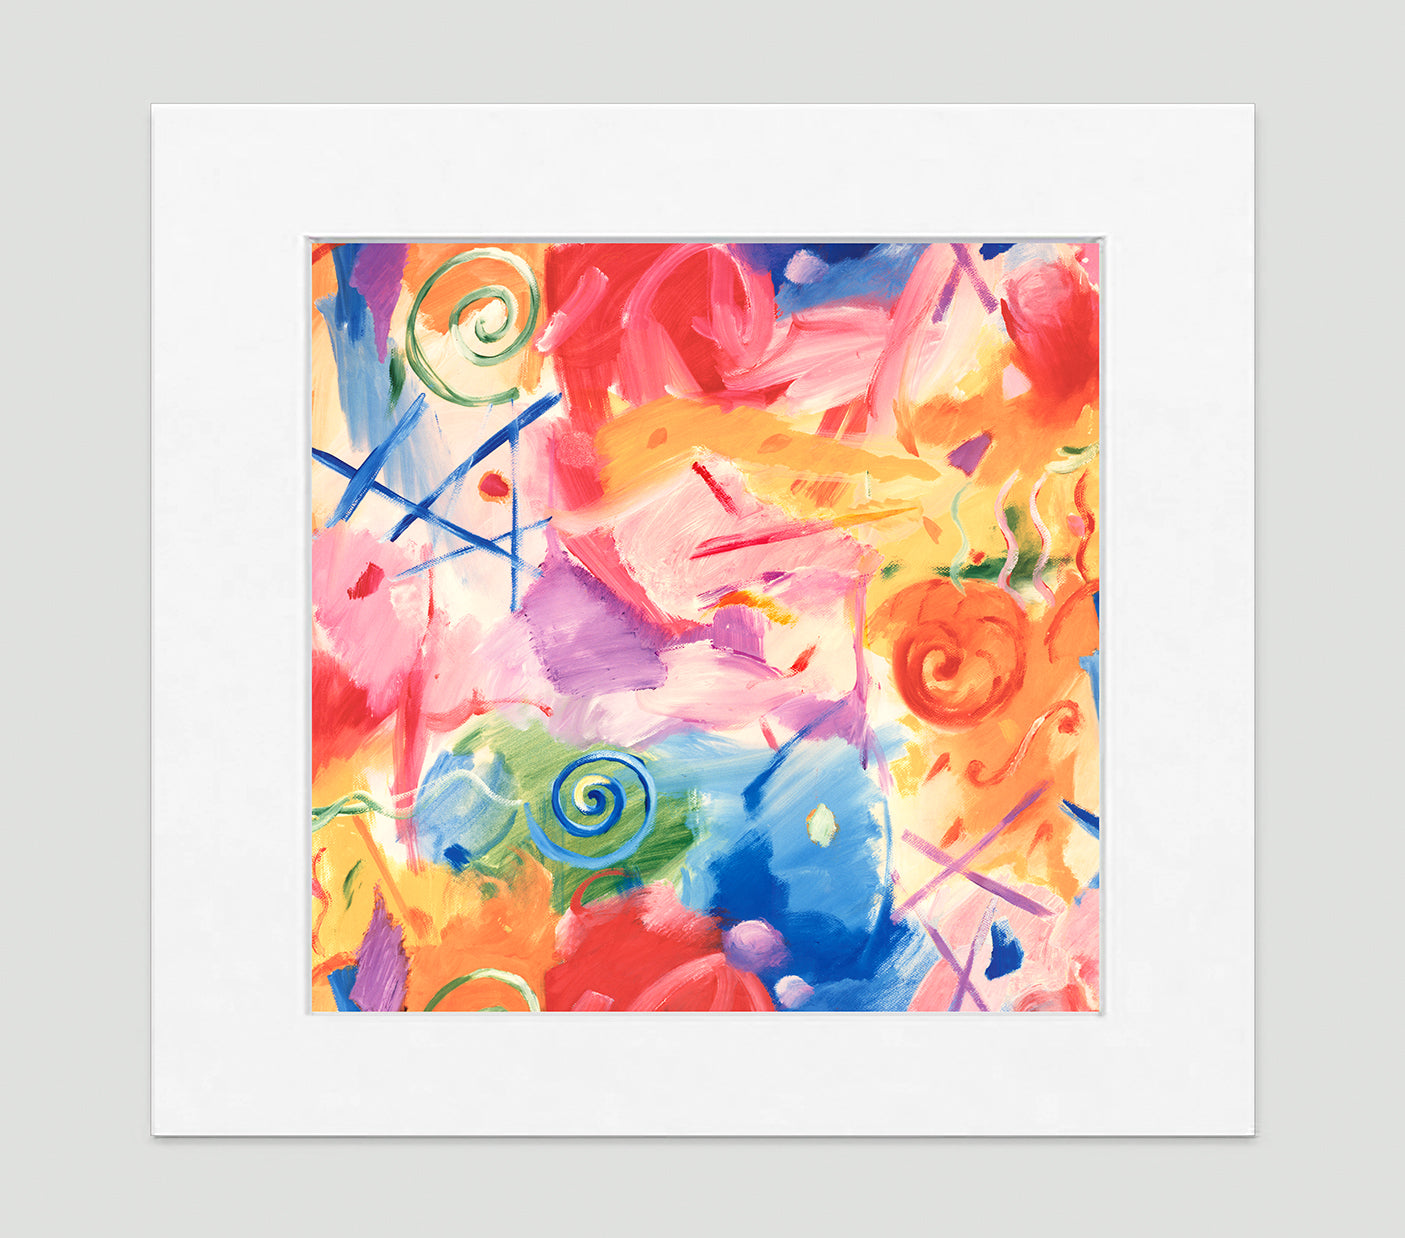 Cirque Abstract Art Print Di Lewis Living Room Wall Decor